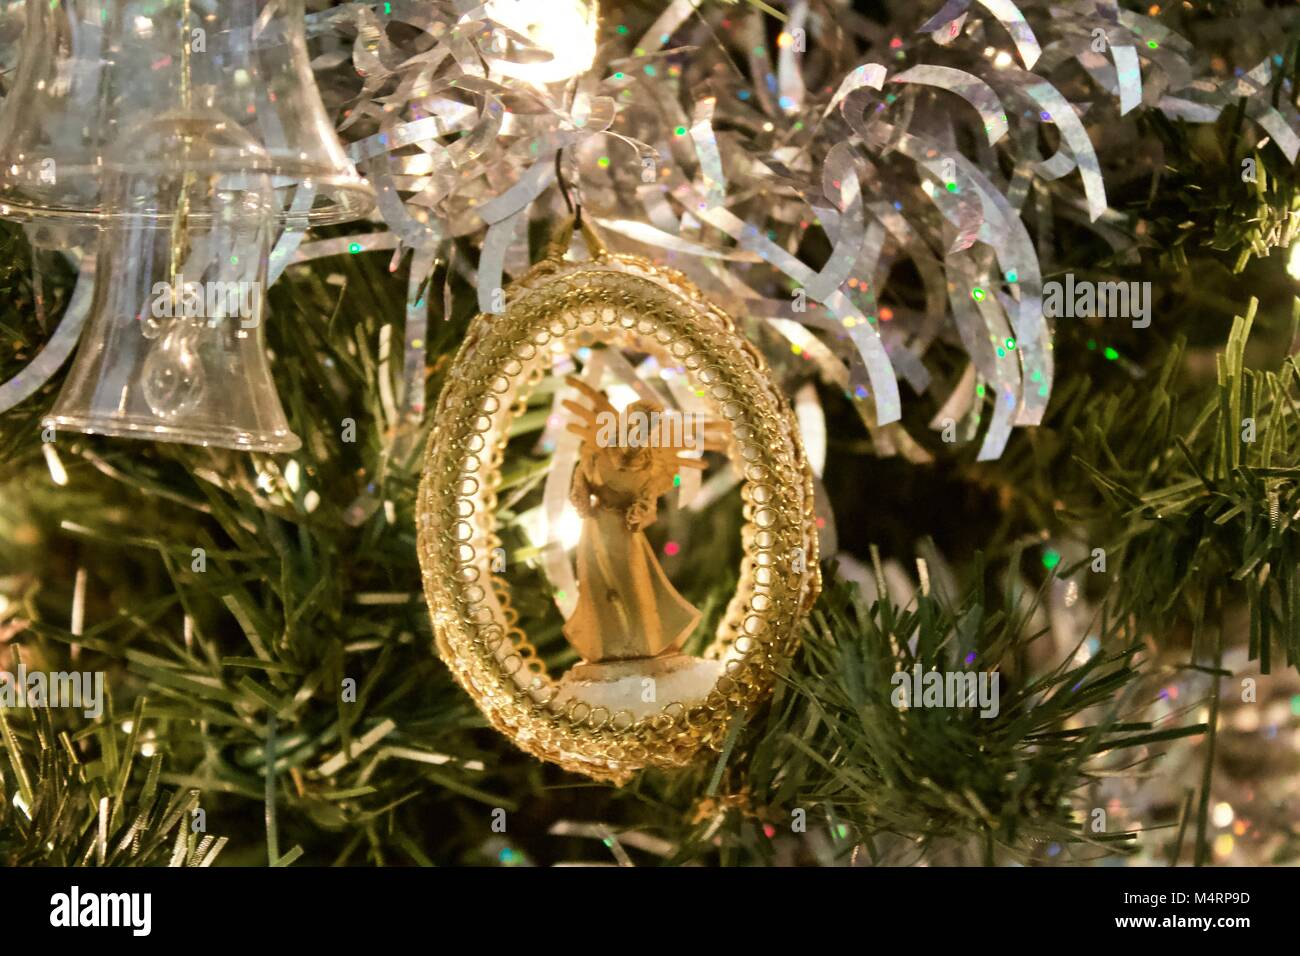 Old Fashioned Christmas Ornament Stock Photos & Old Fashioned ...